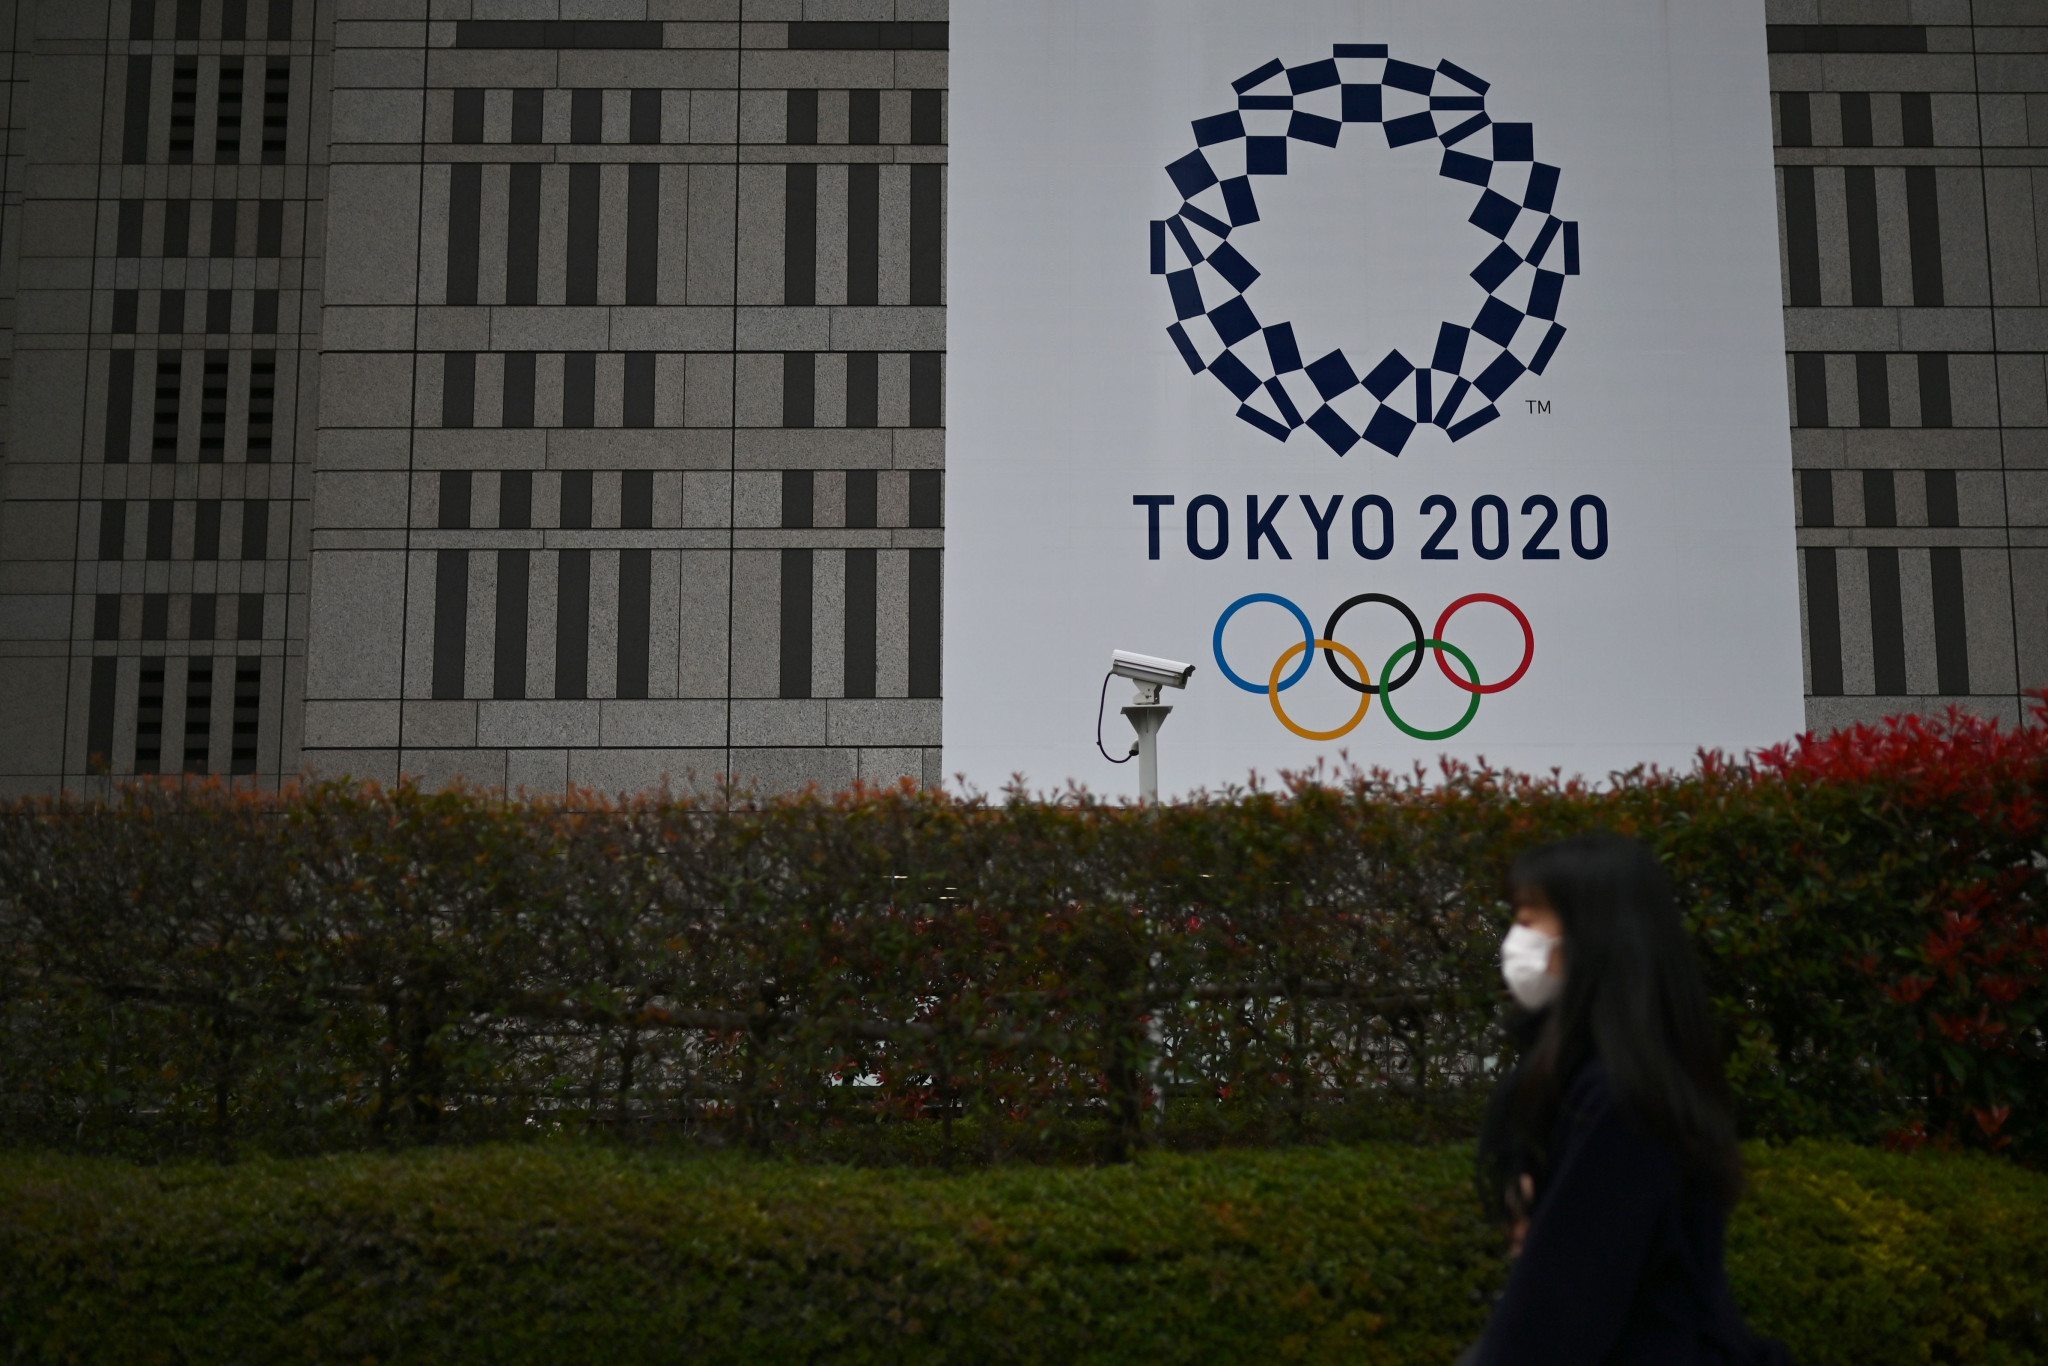 Australia tell athletes to prepare for Tokyo Olympics in 2021